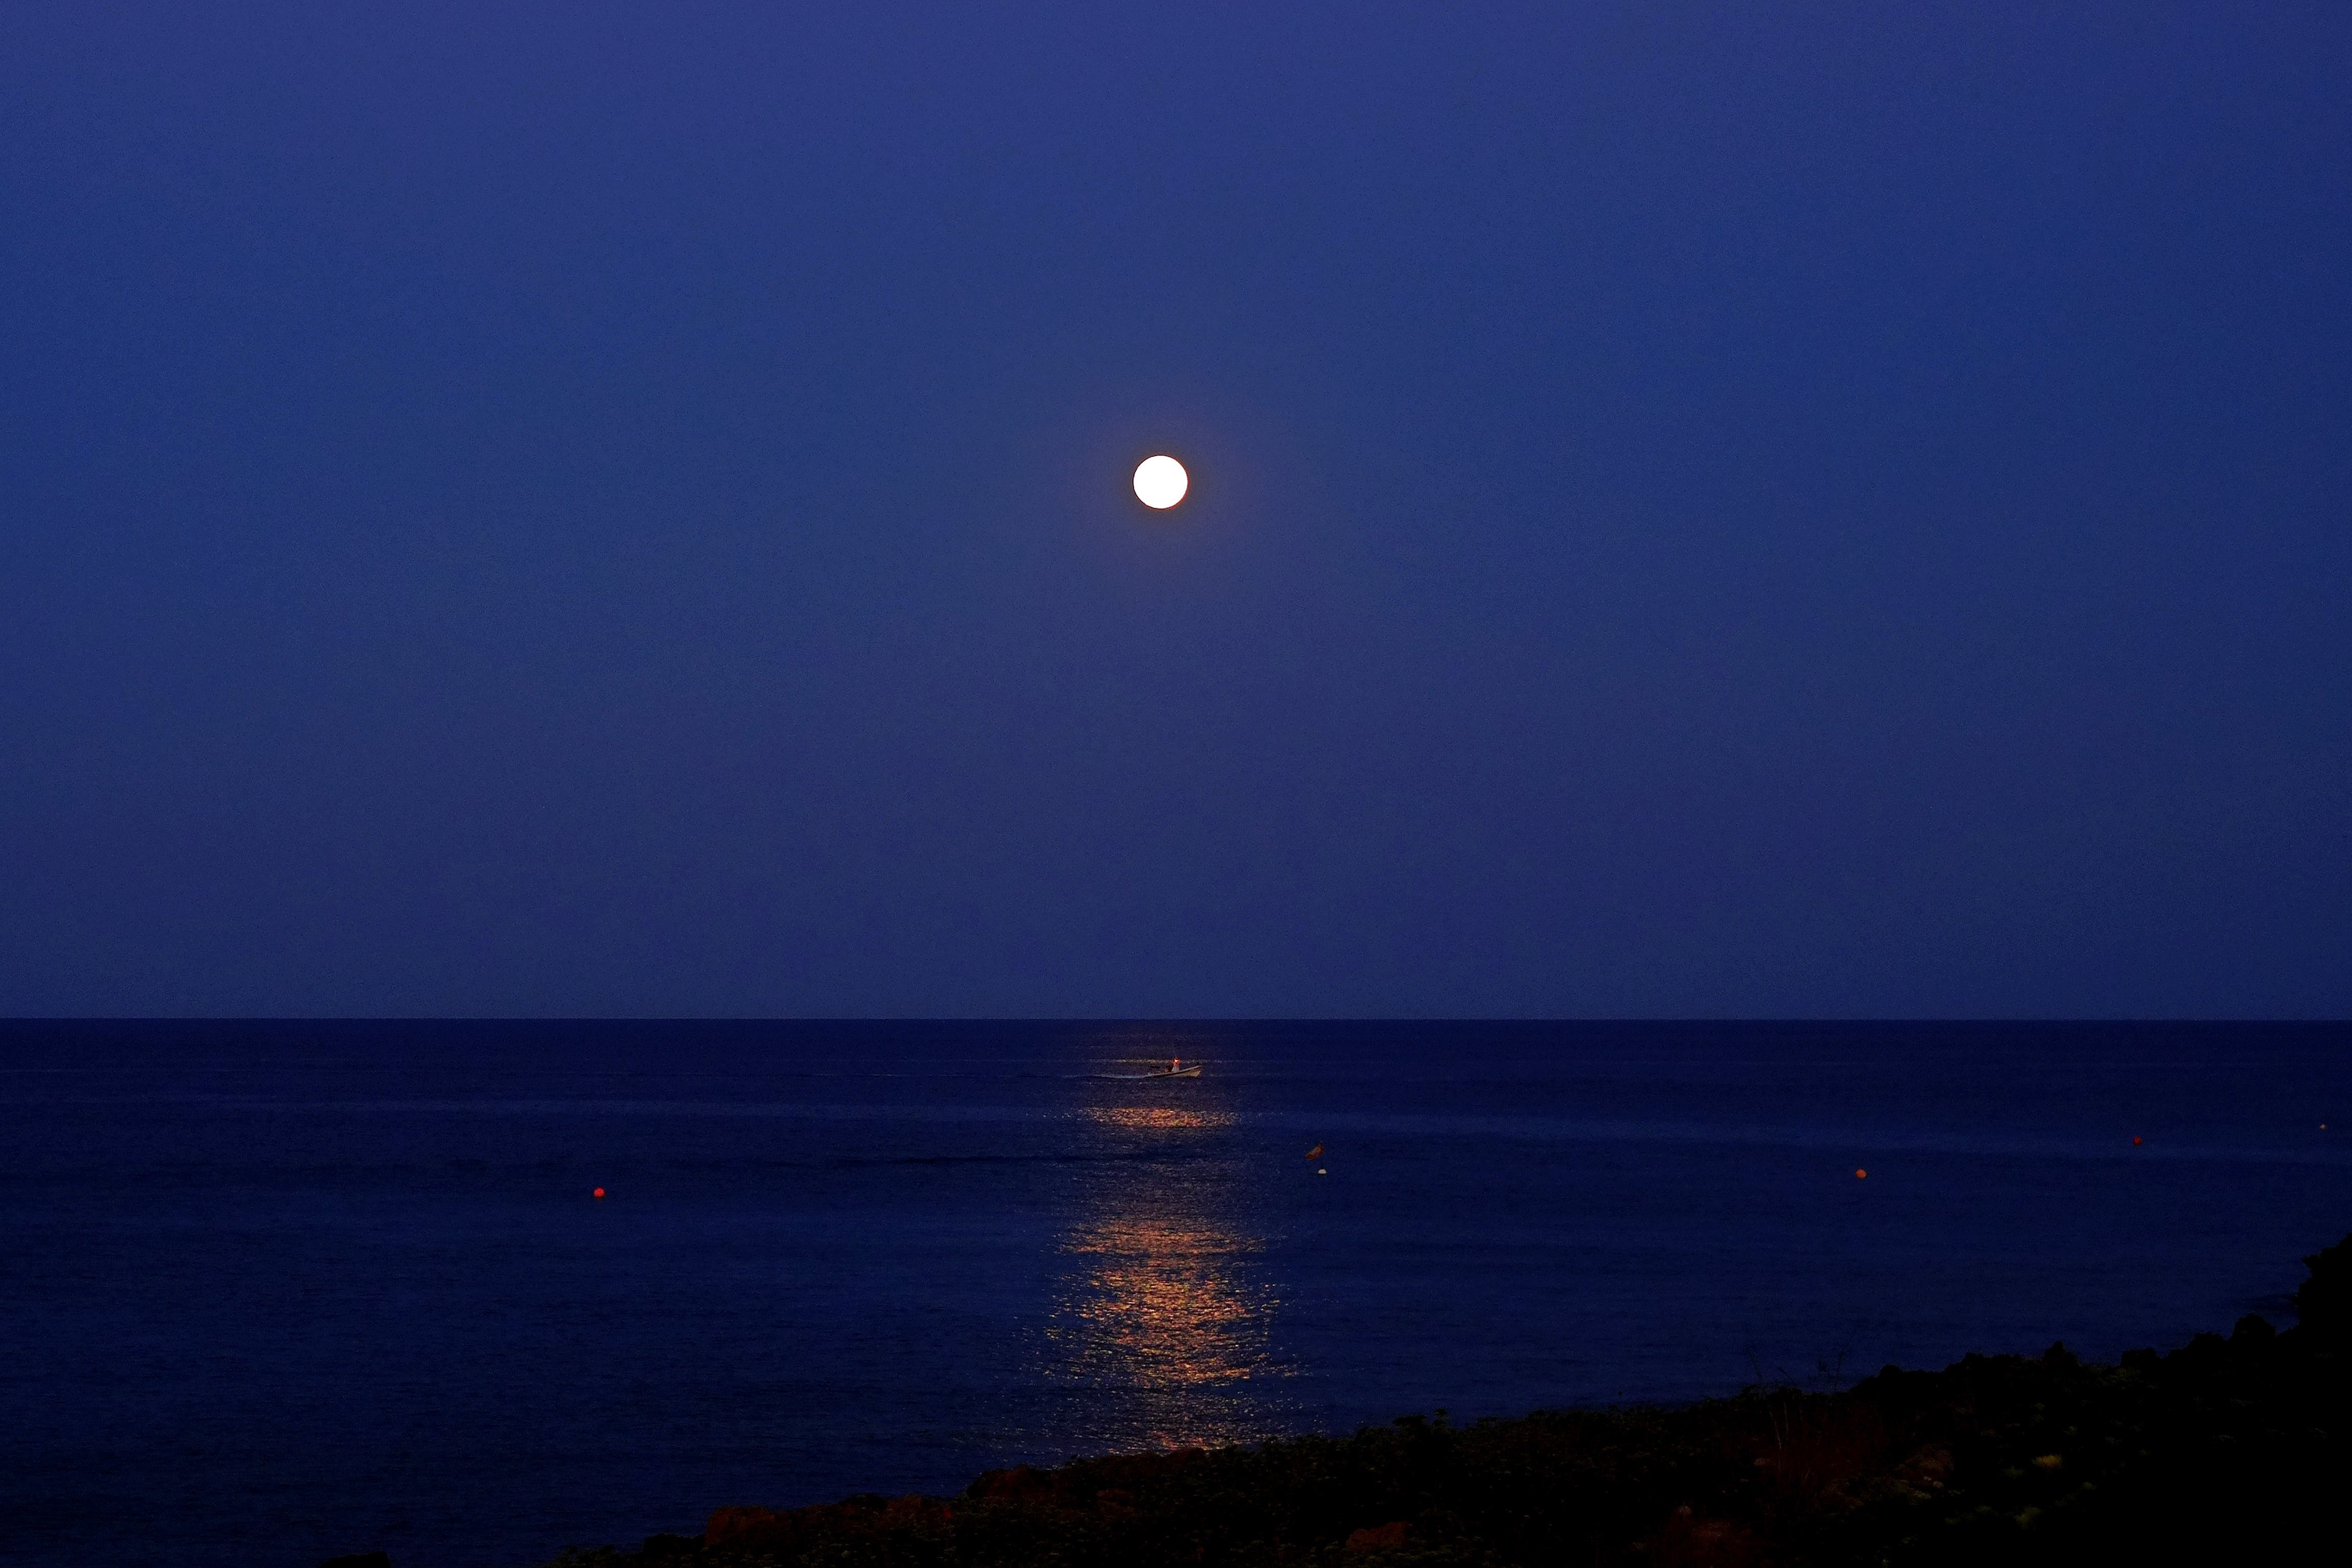 A boat on the sea passes under the light of the full moon at Protaras resort in the southeast part of the island of Cyprus on Aug. 29, 2015.